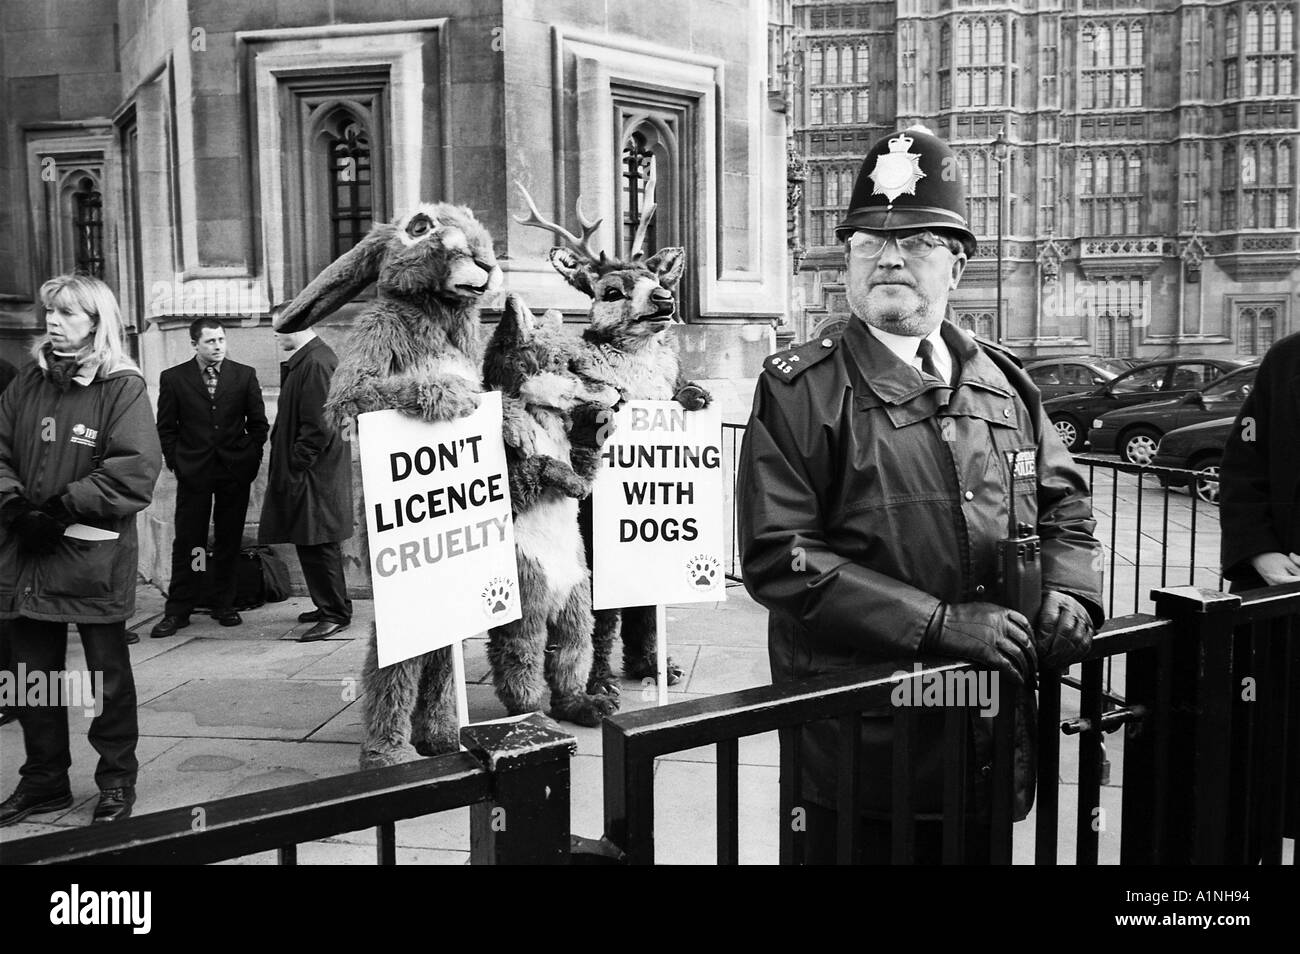 Dod Miller Network Photographers Image Ref DMA 10139658 psd Anti hunt protesters outside Houses of Parliament on the eve of thev - Stock Image